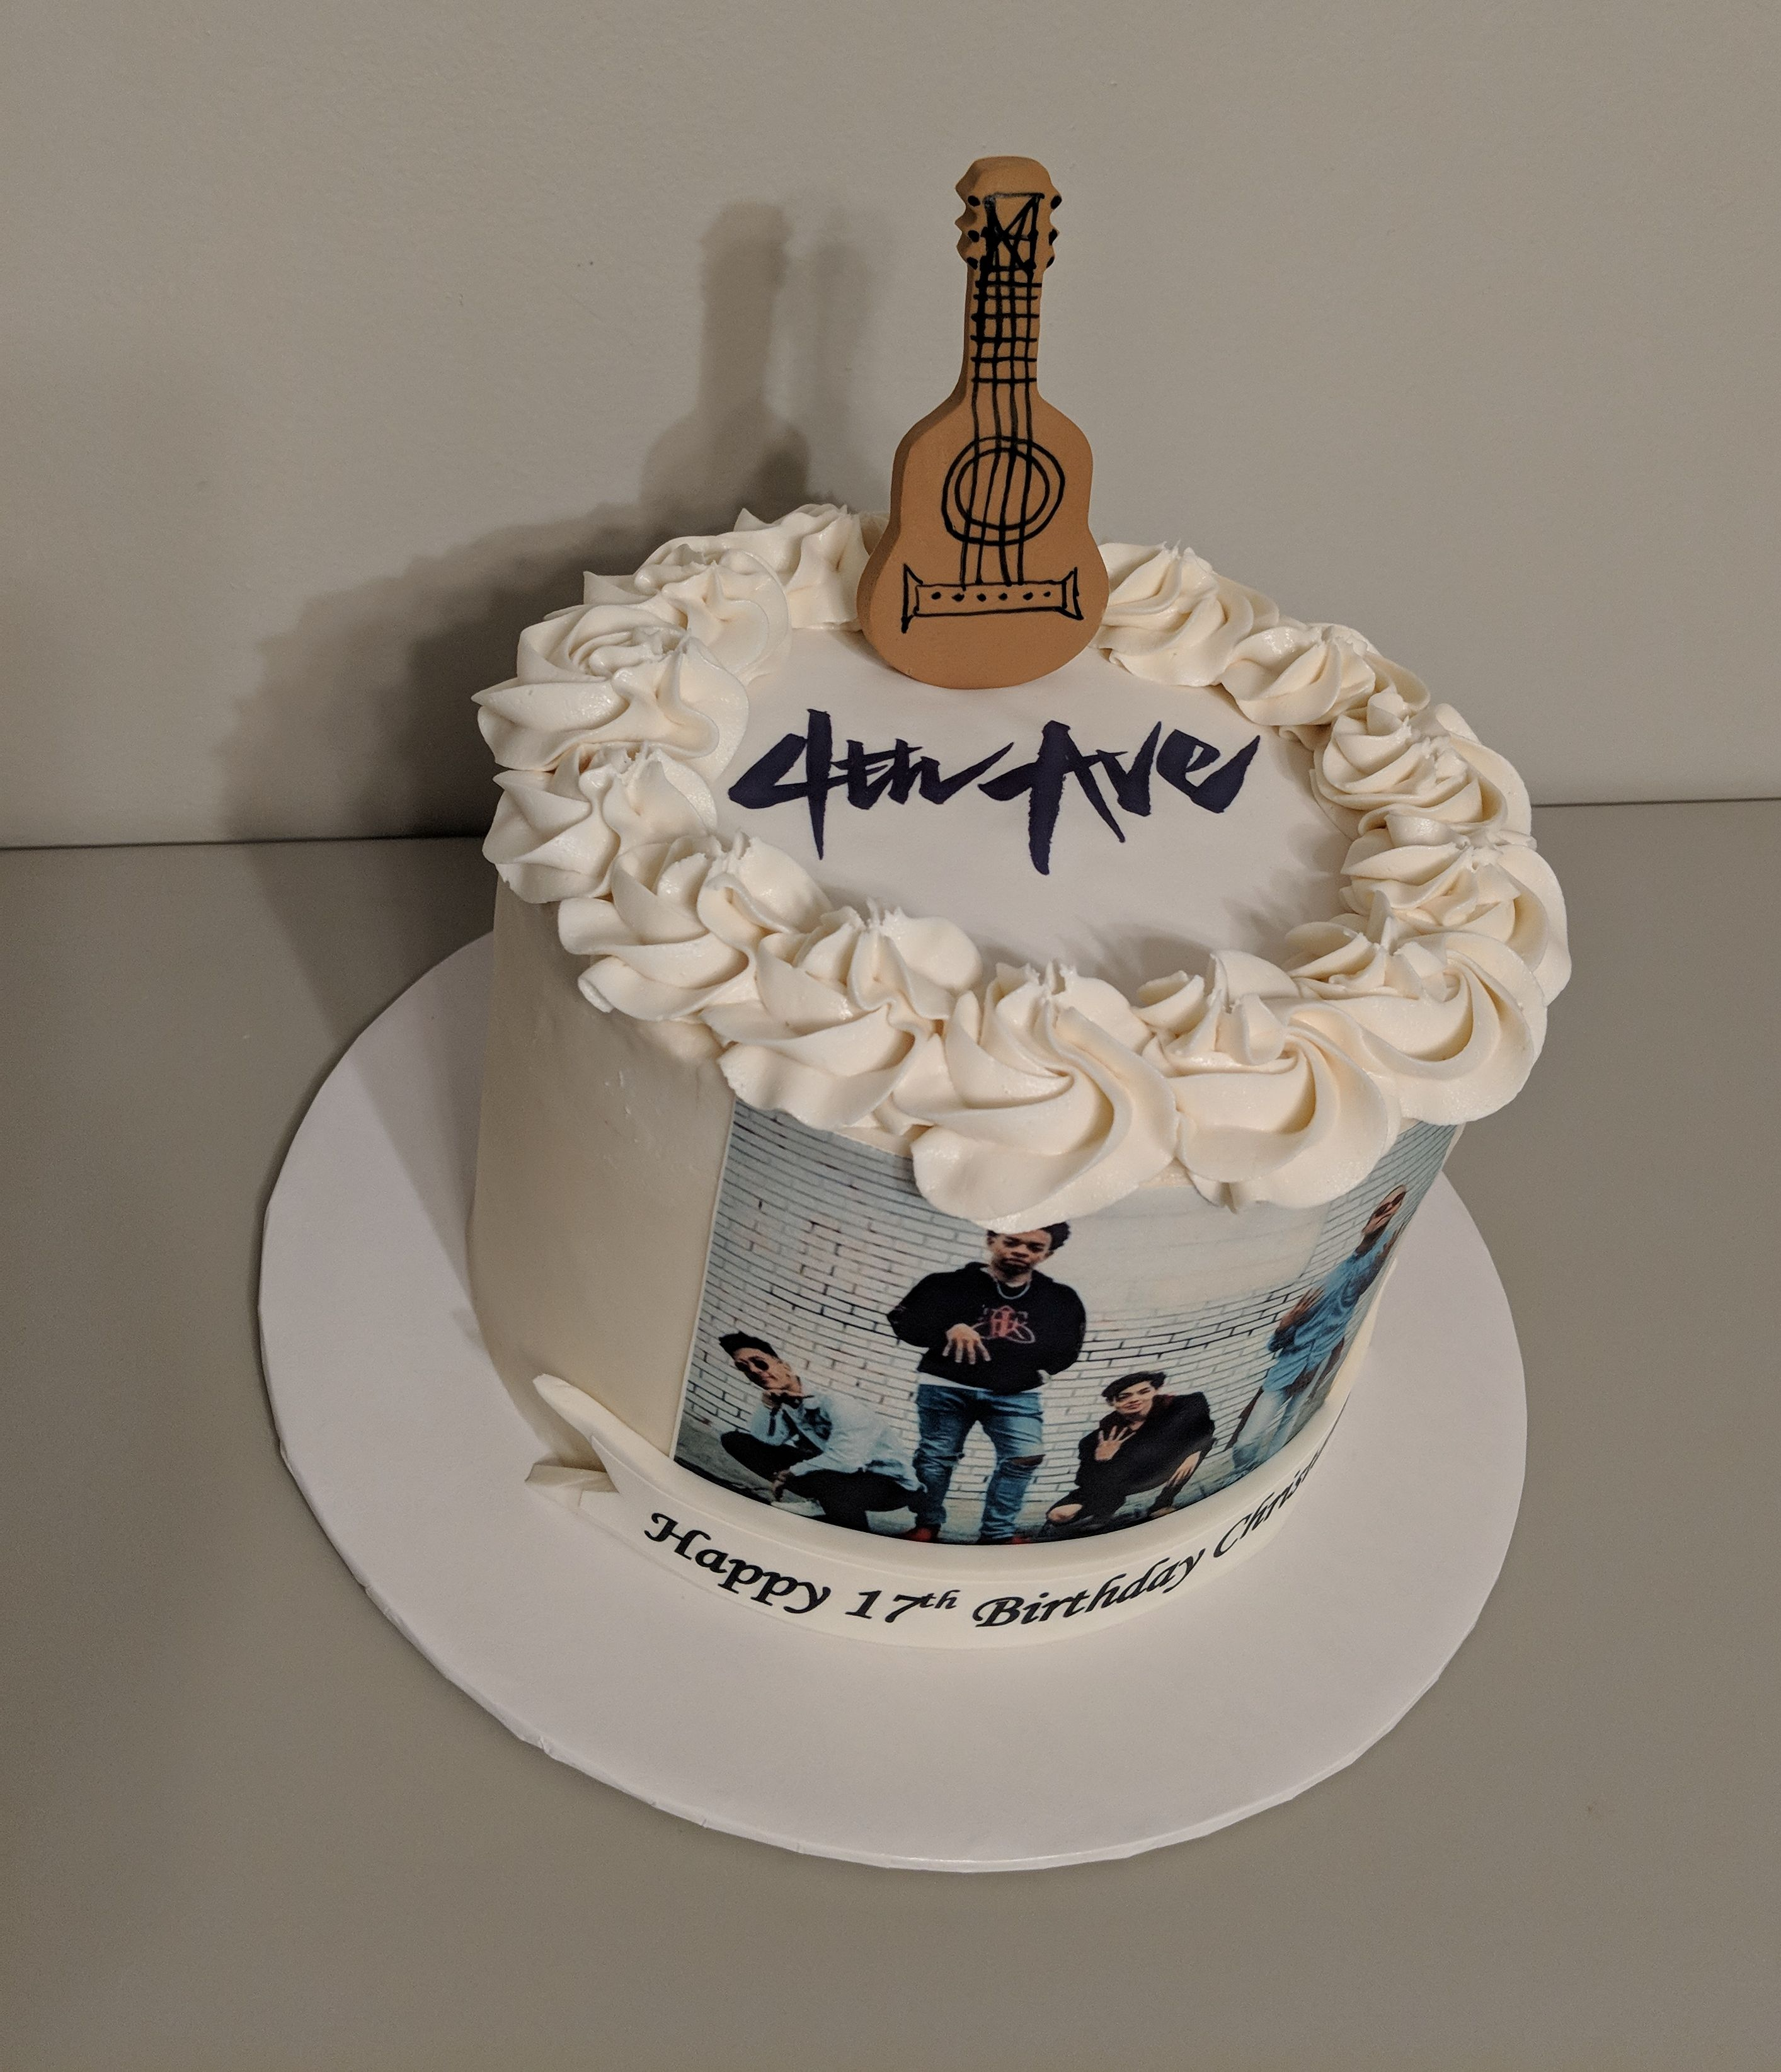 4th Avenue Music Cake